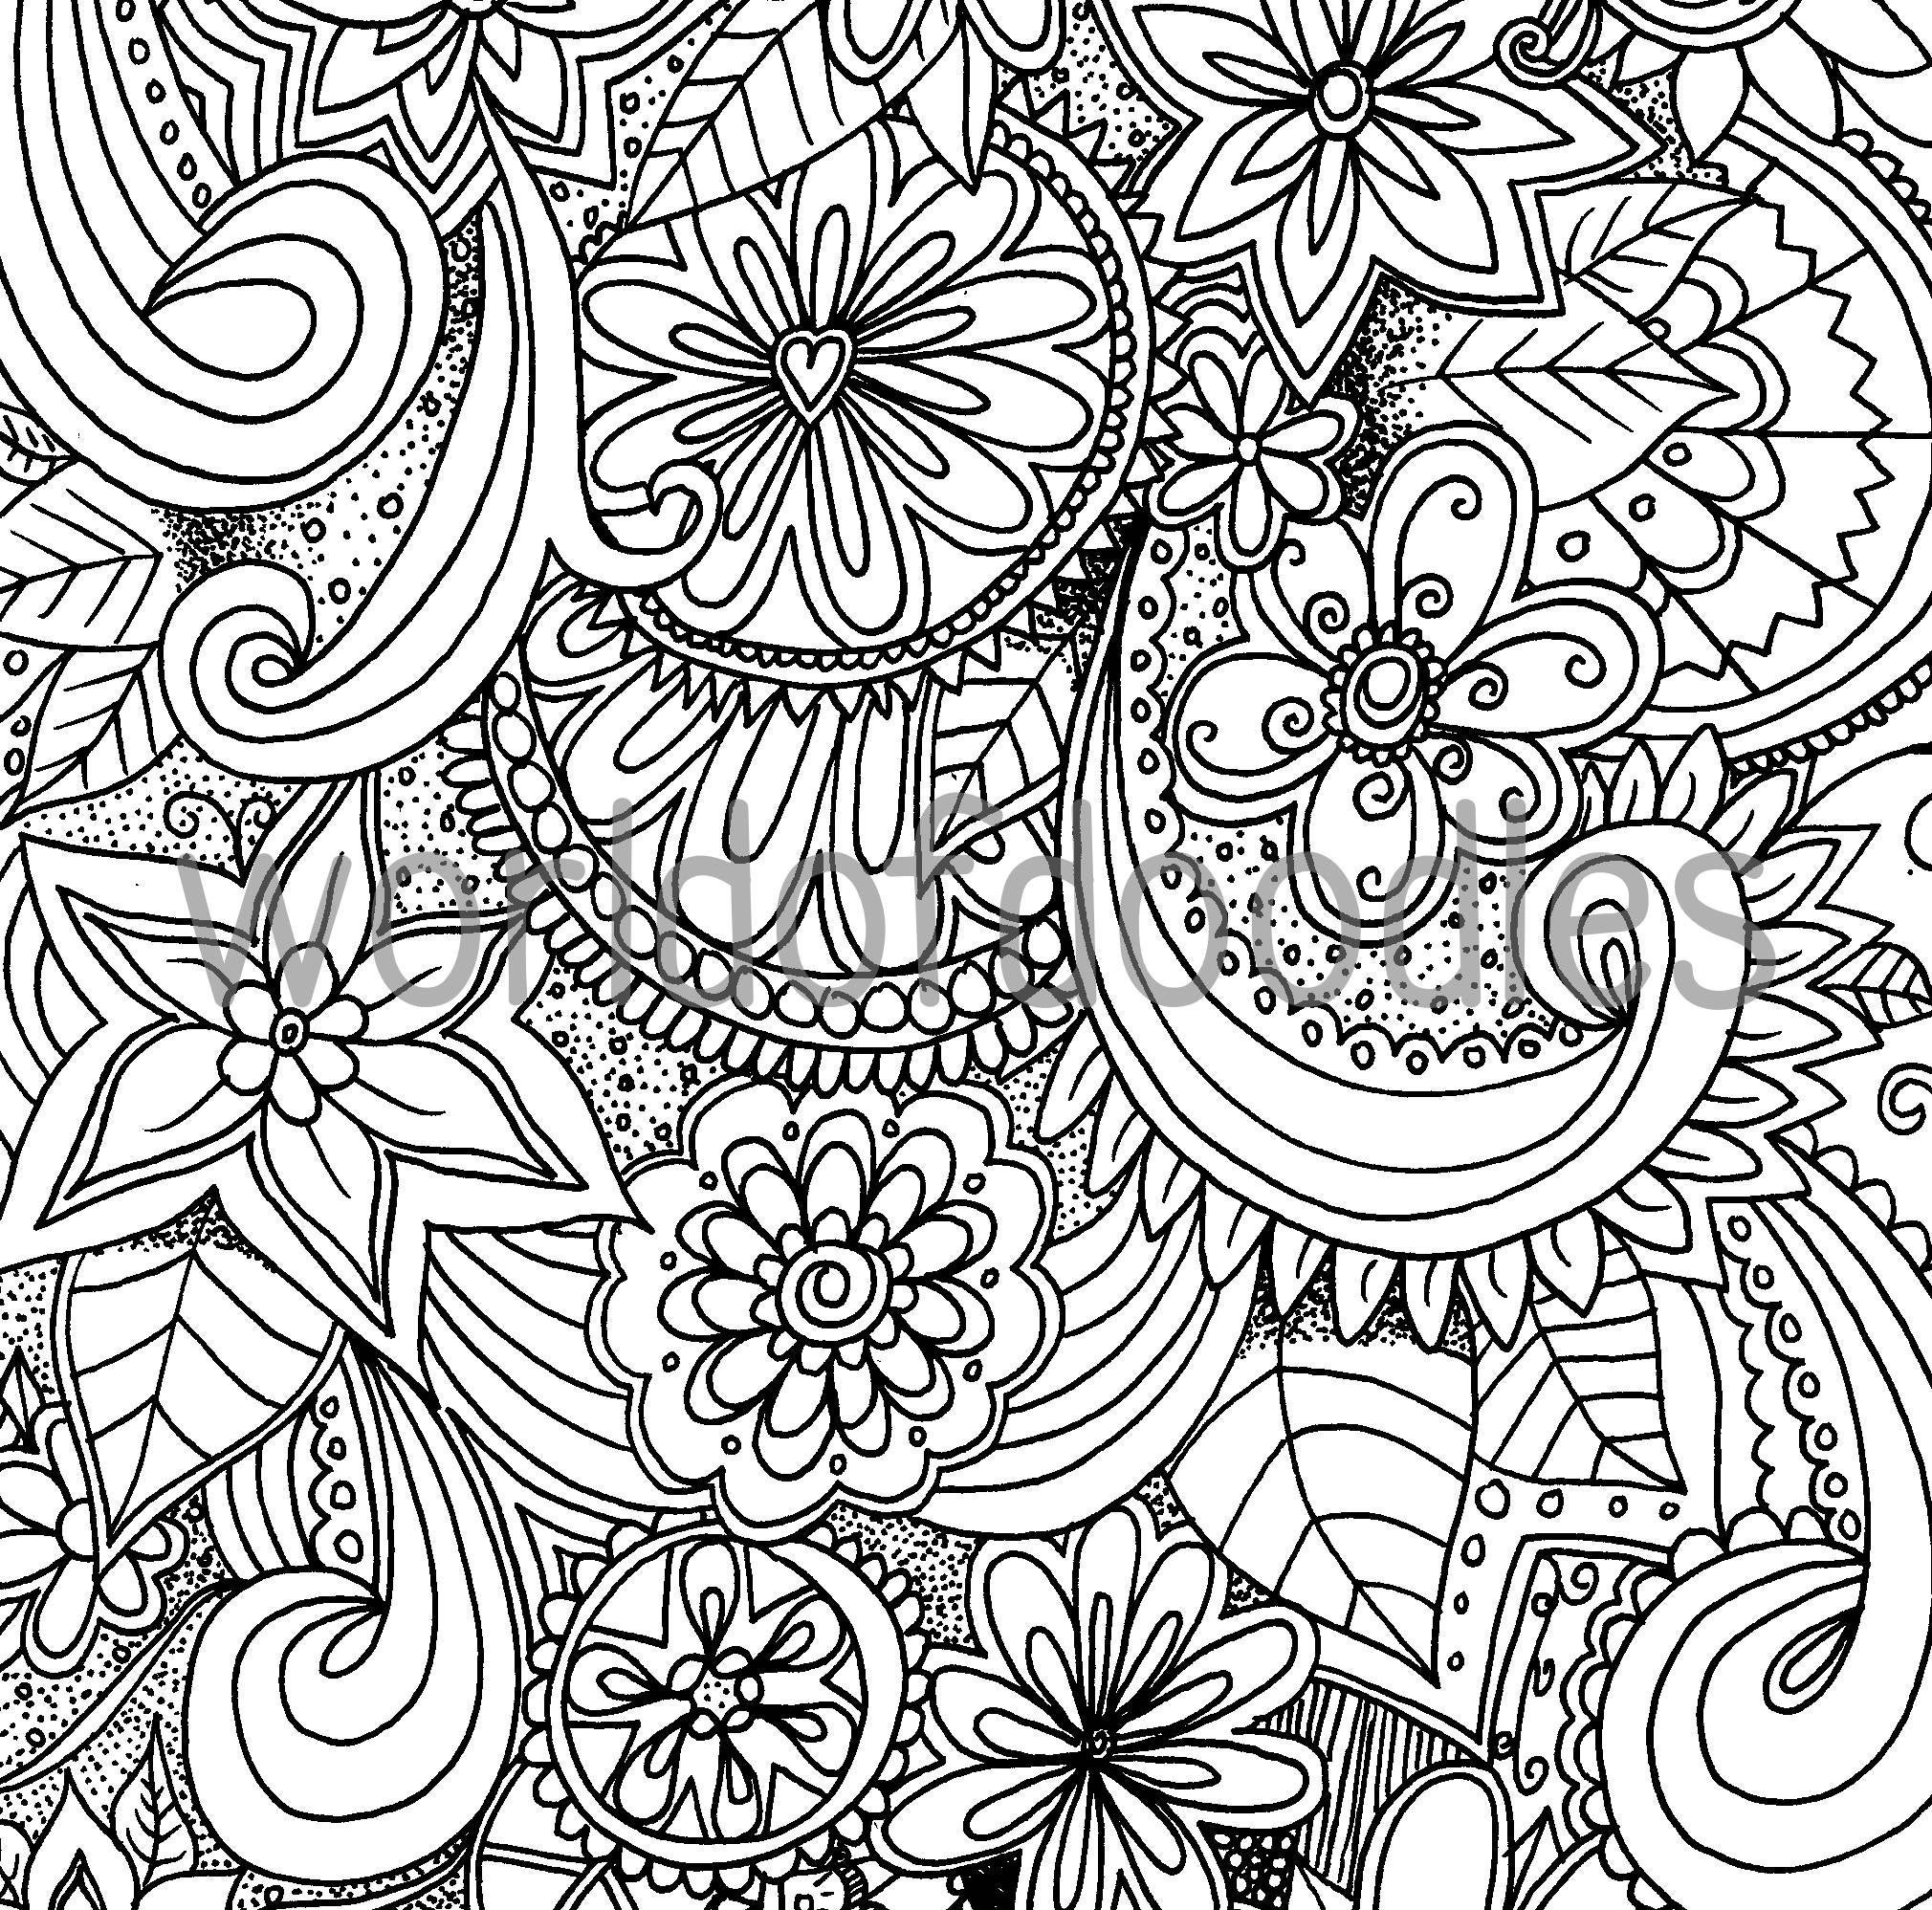 Flower Garden 2 A4 Colouring Page Printable PDF Download ...